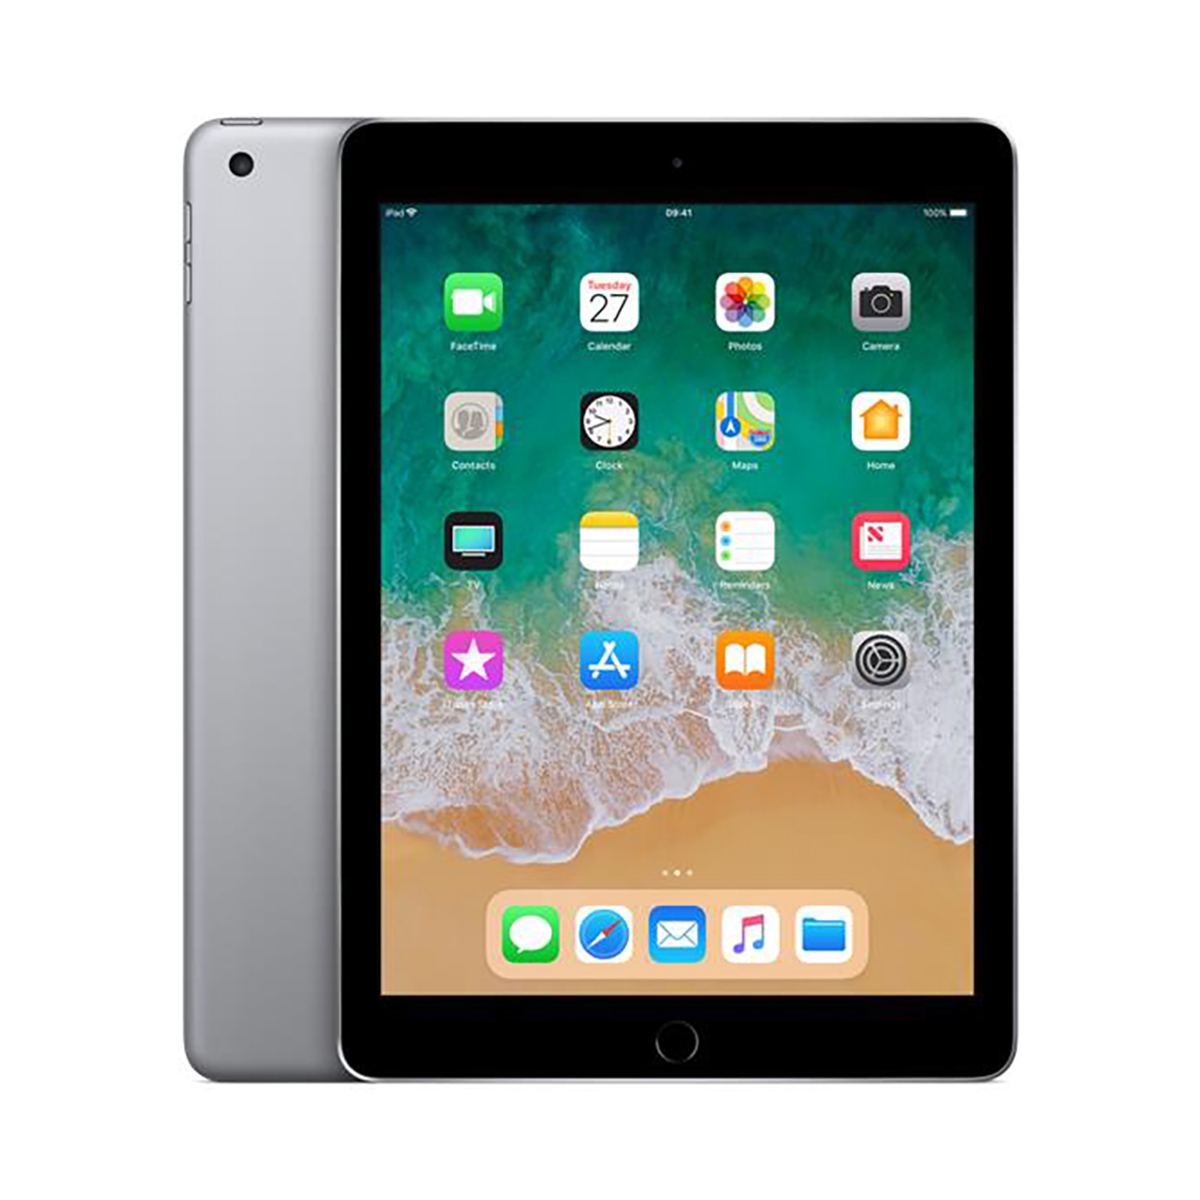 Tablet computers Apple iPad Pro Cellular Wi-Fi 64GB 12MP Camera 11inch iPad Space Grey Ref MU0M2B/A